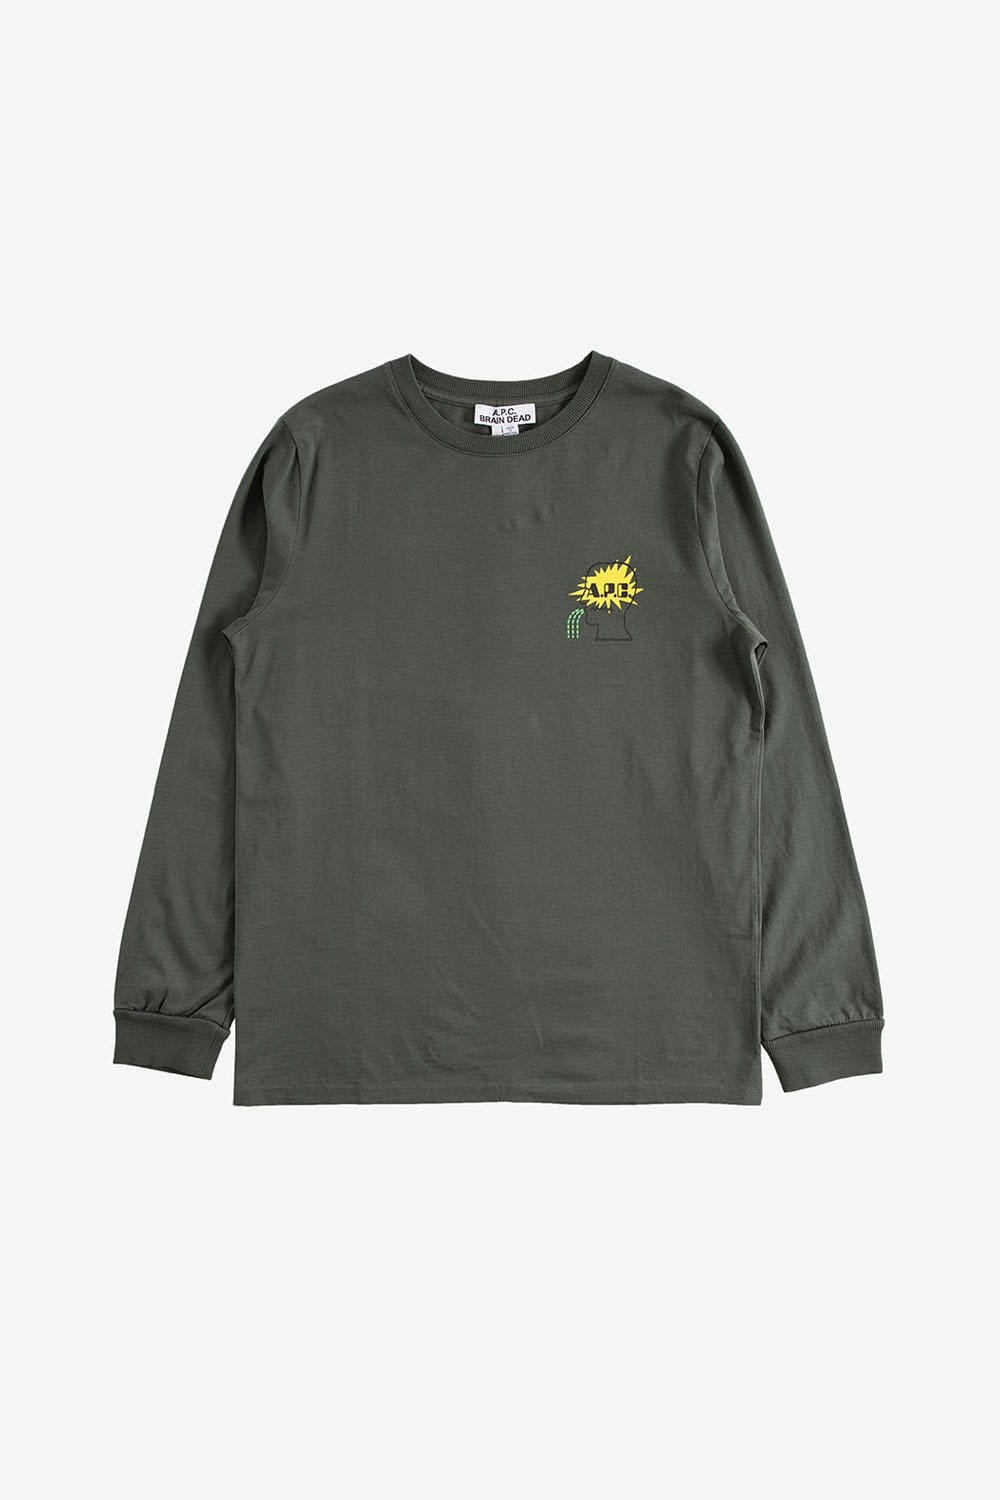 A.P.C. Apparel x Brain Dead Molly Long Sleeve T-Shirt